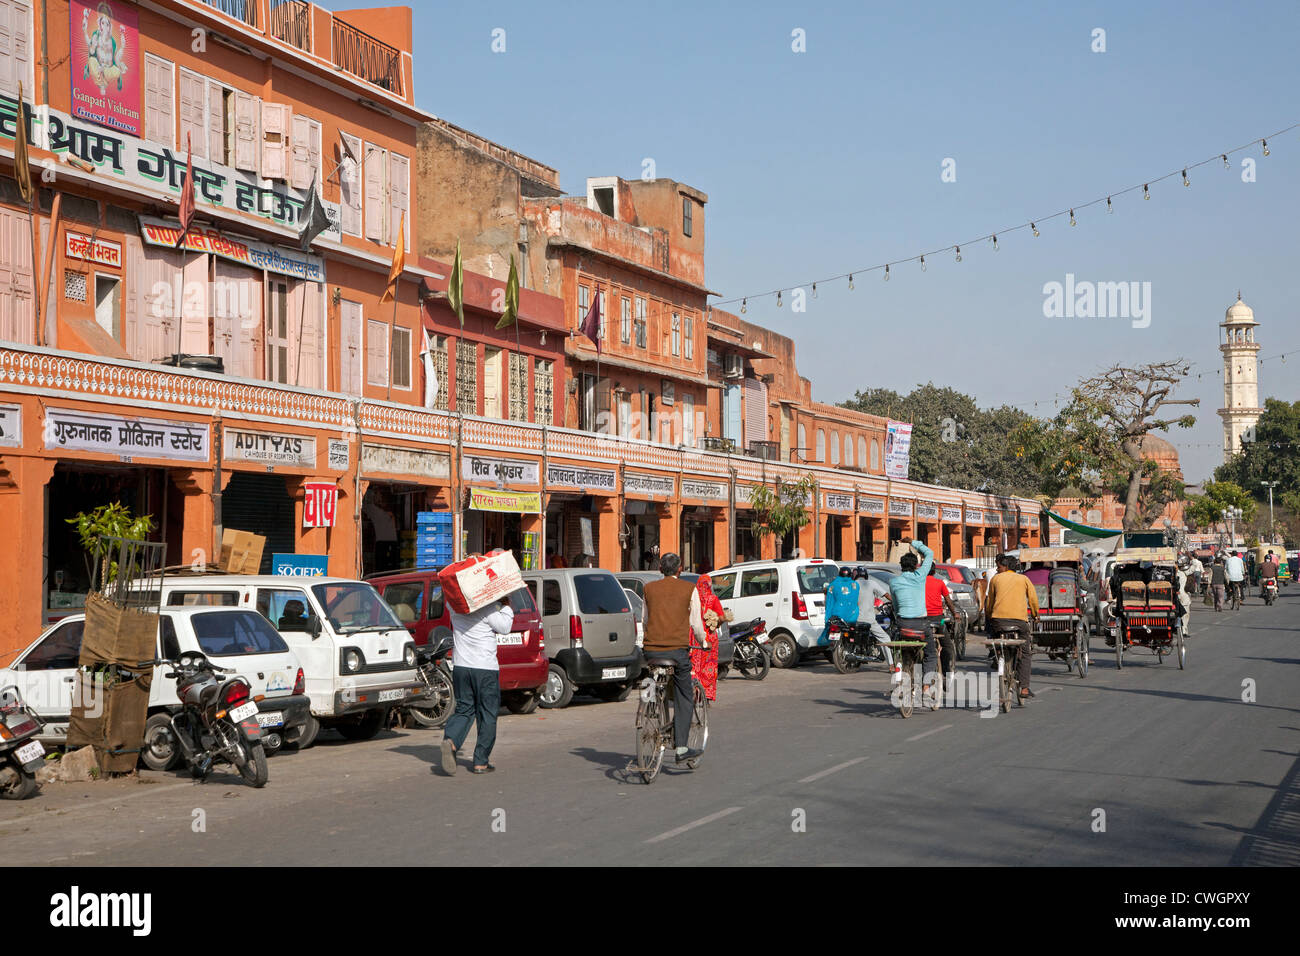 Street scene in the pink city of Jaipur, Rajasthan, India - Stock Image